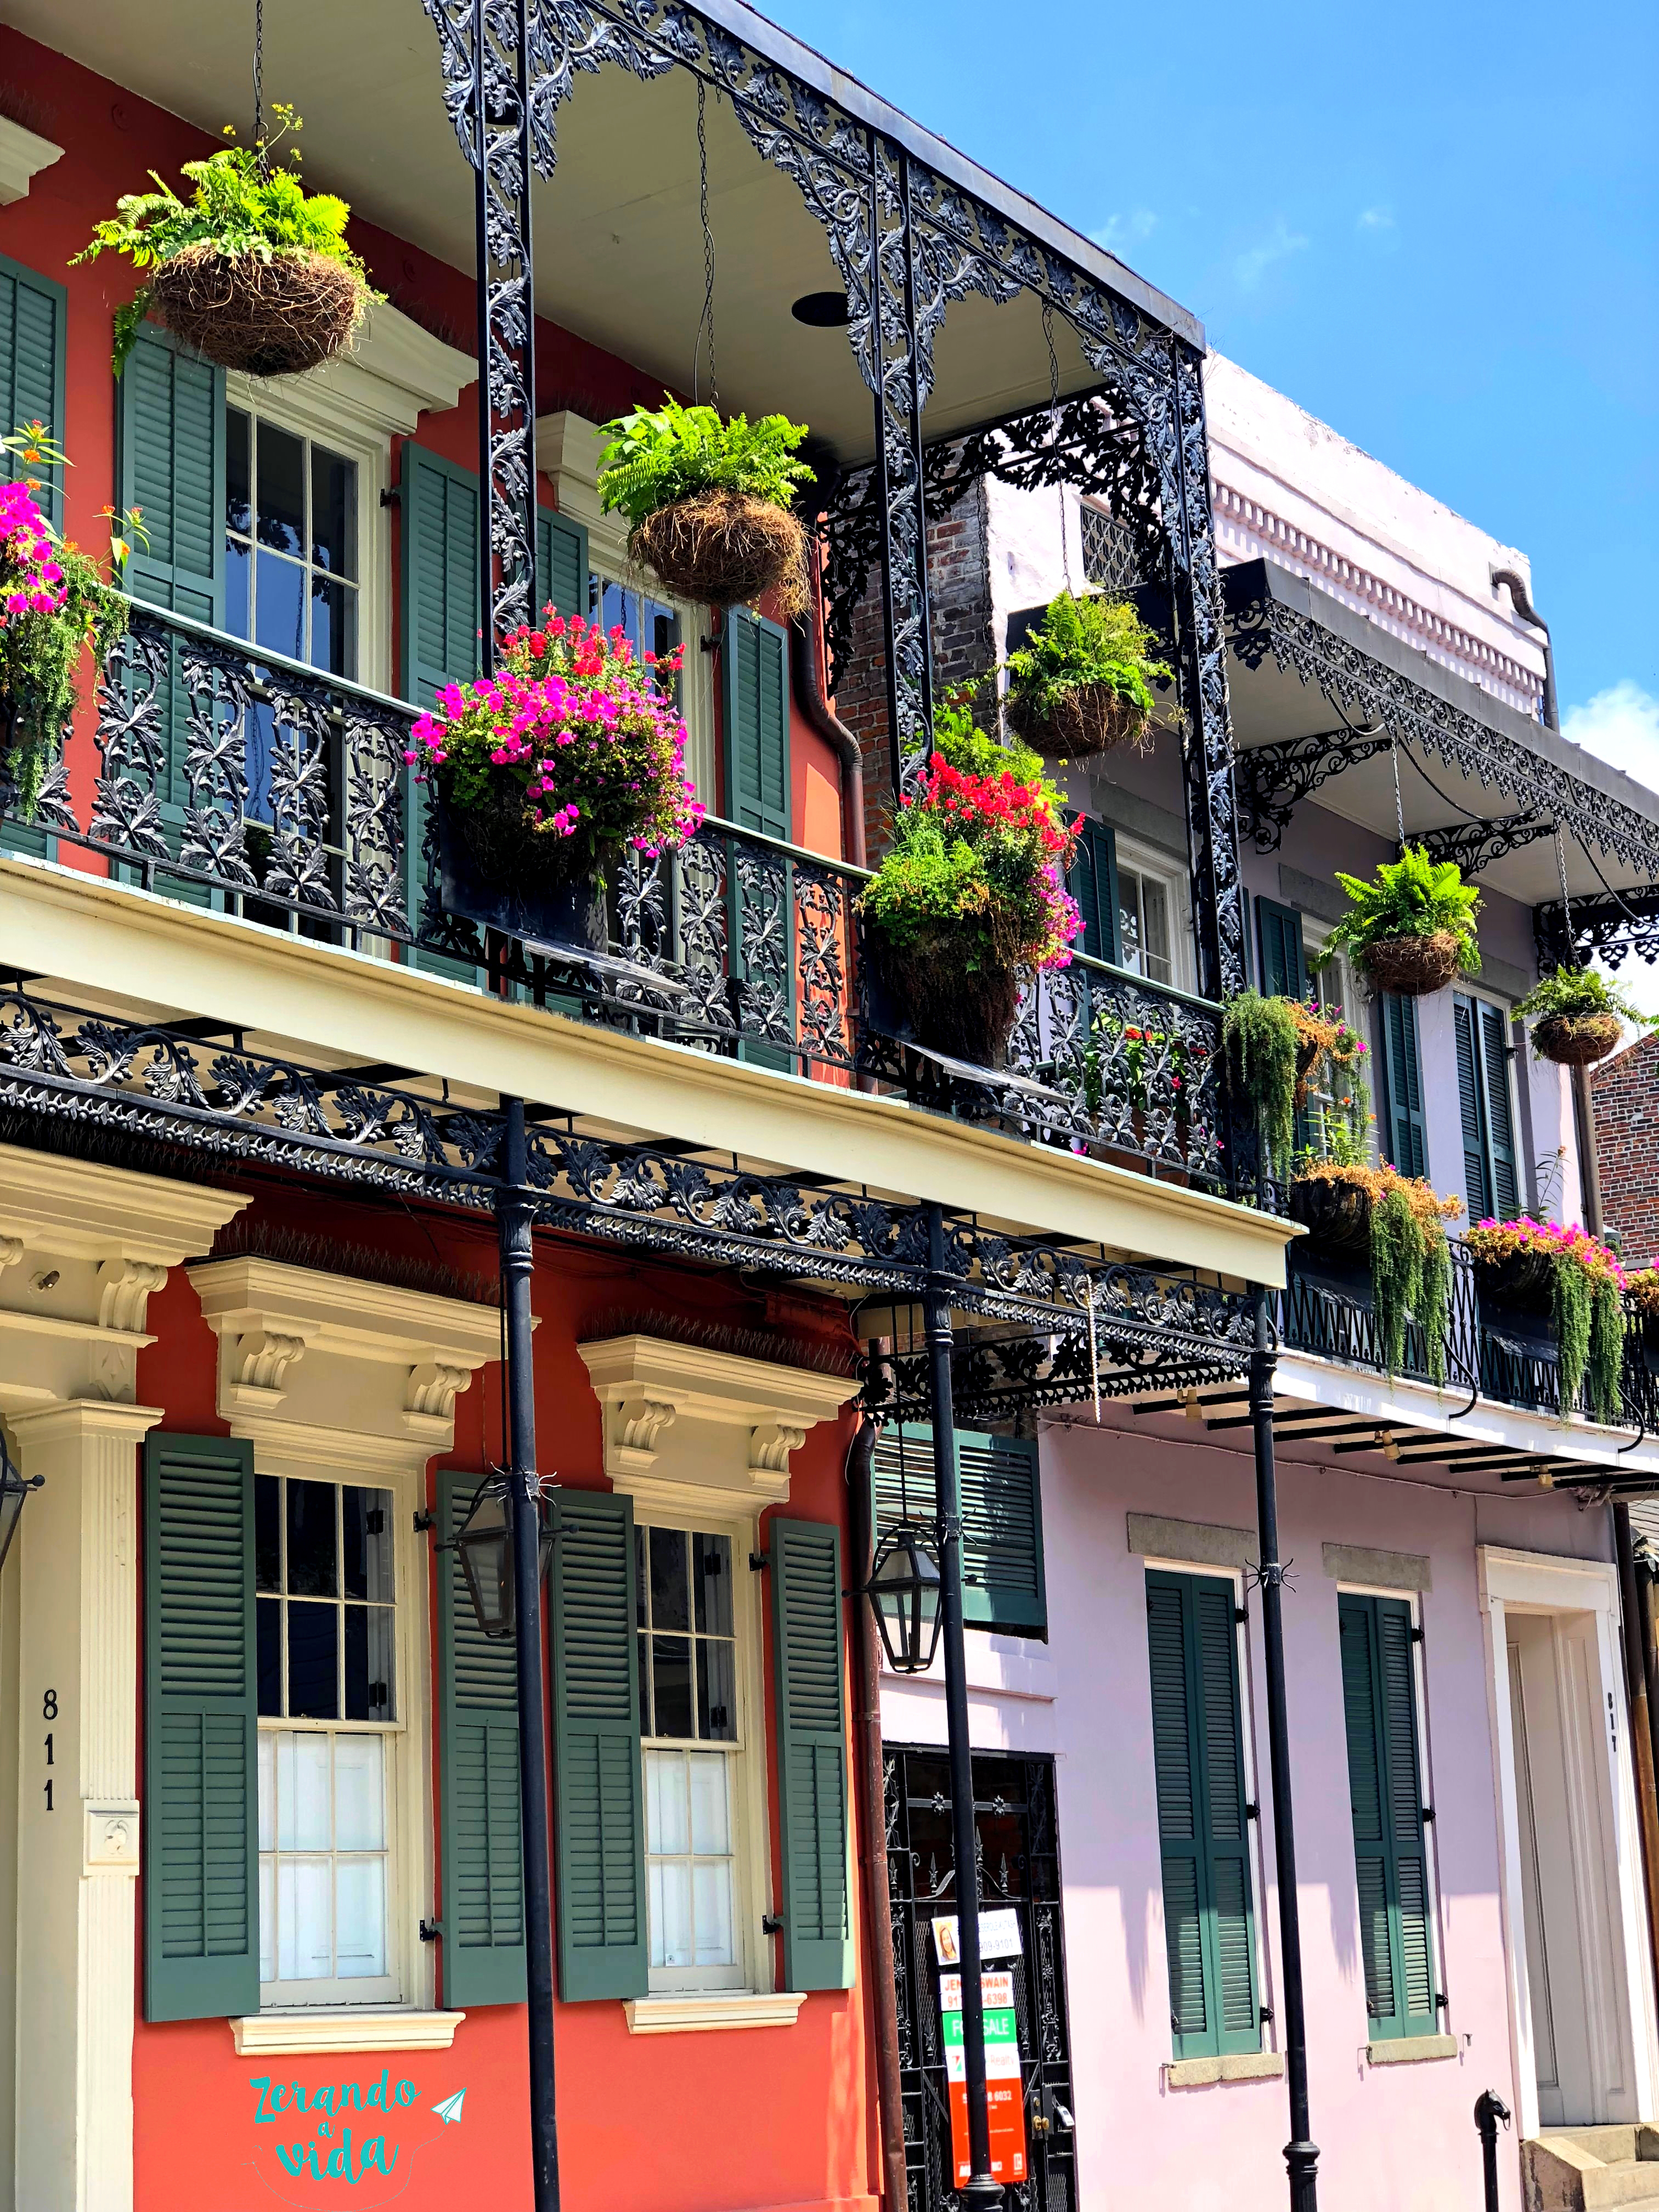 French Quarter New Orleans Louisiana